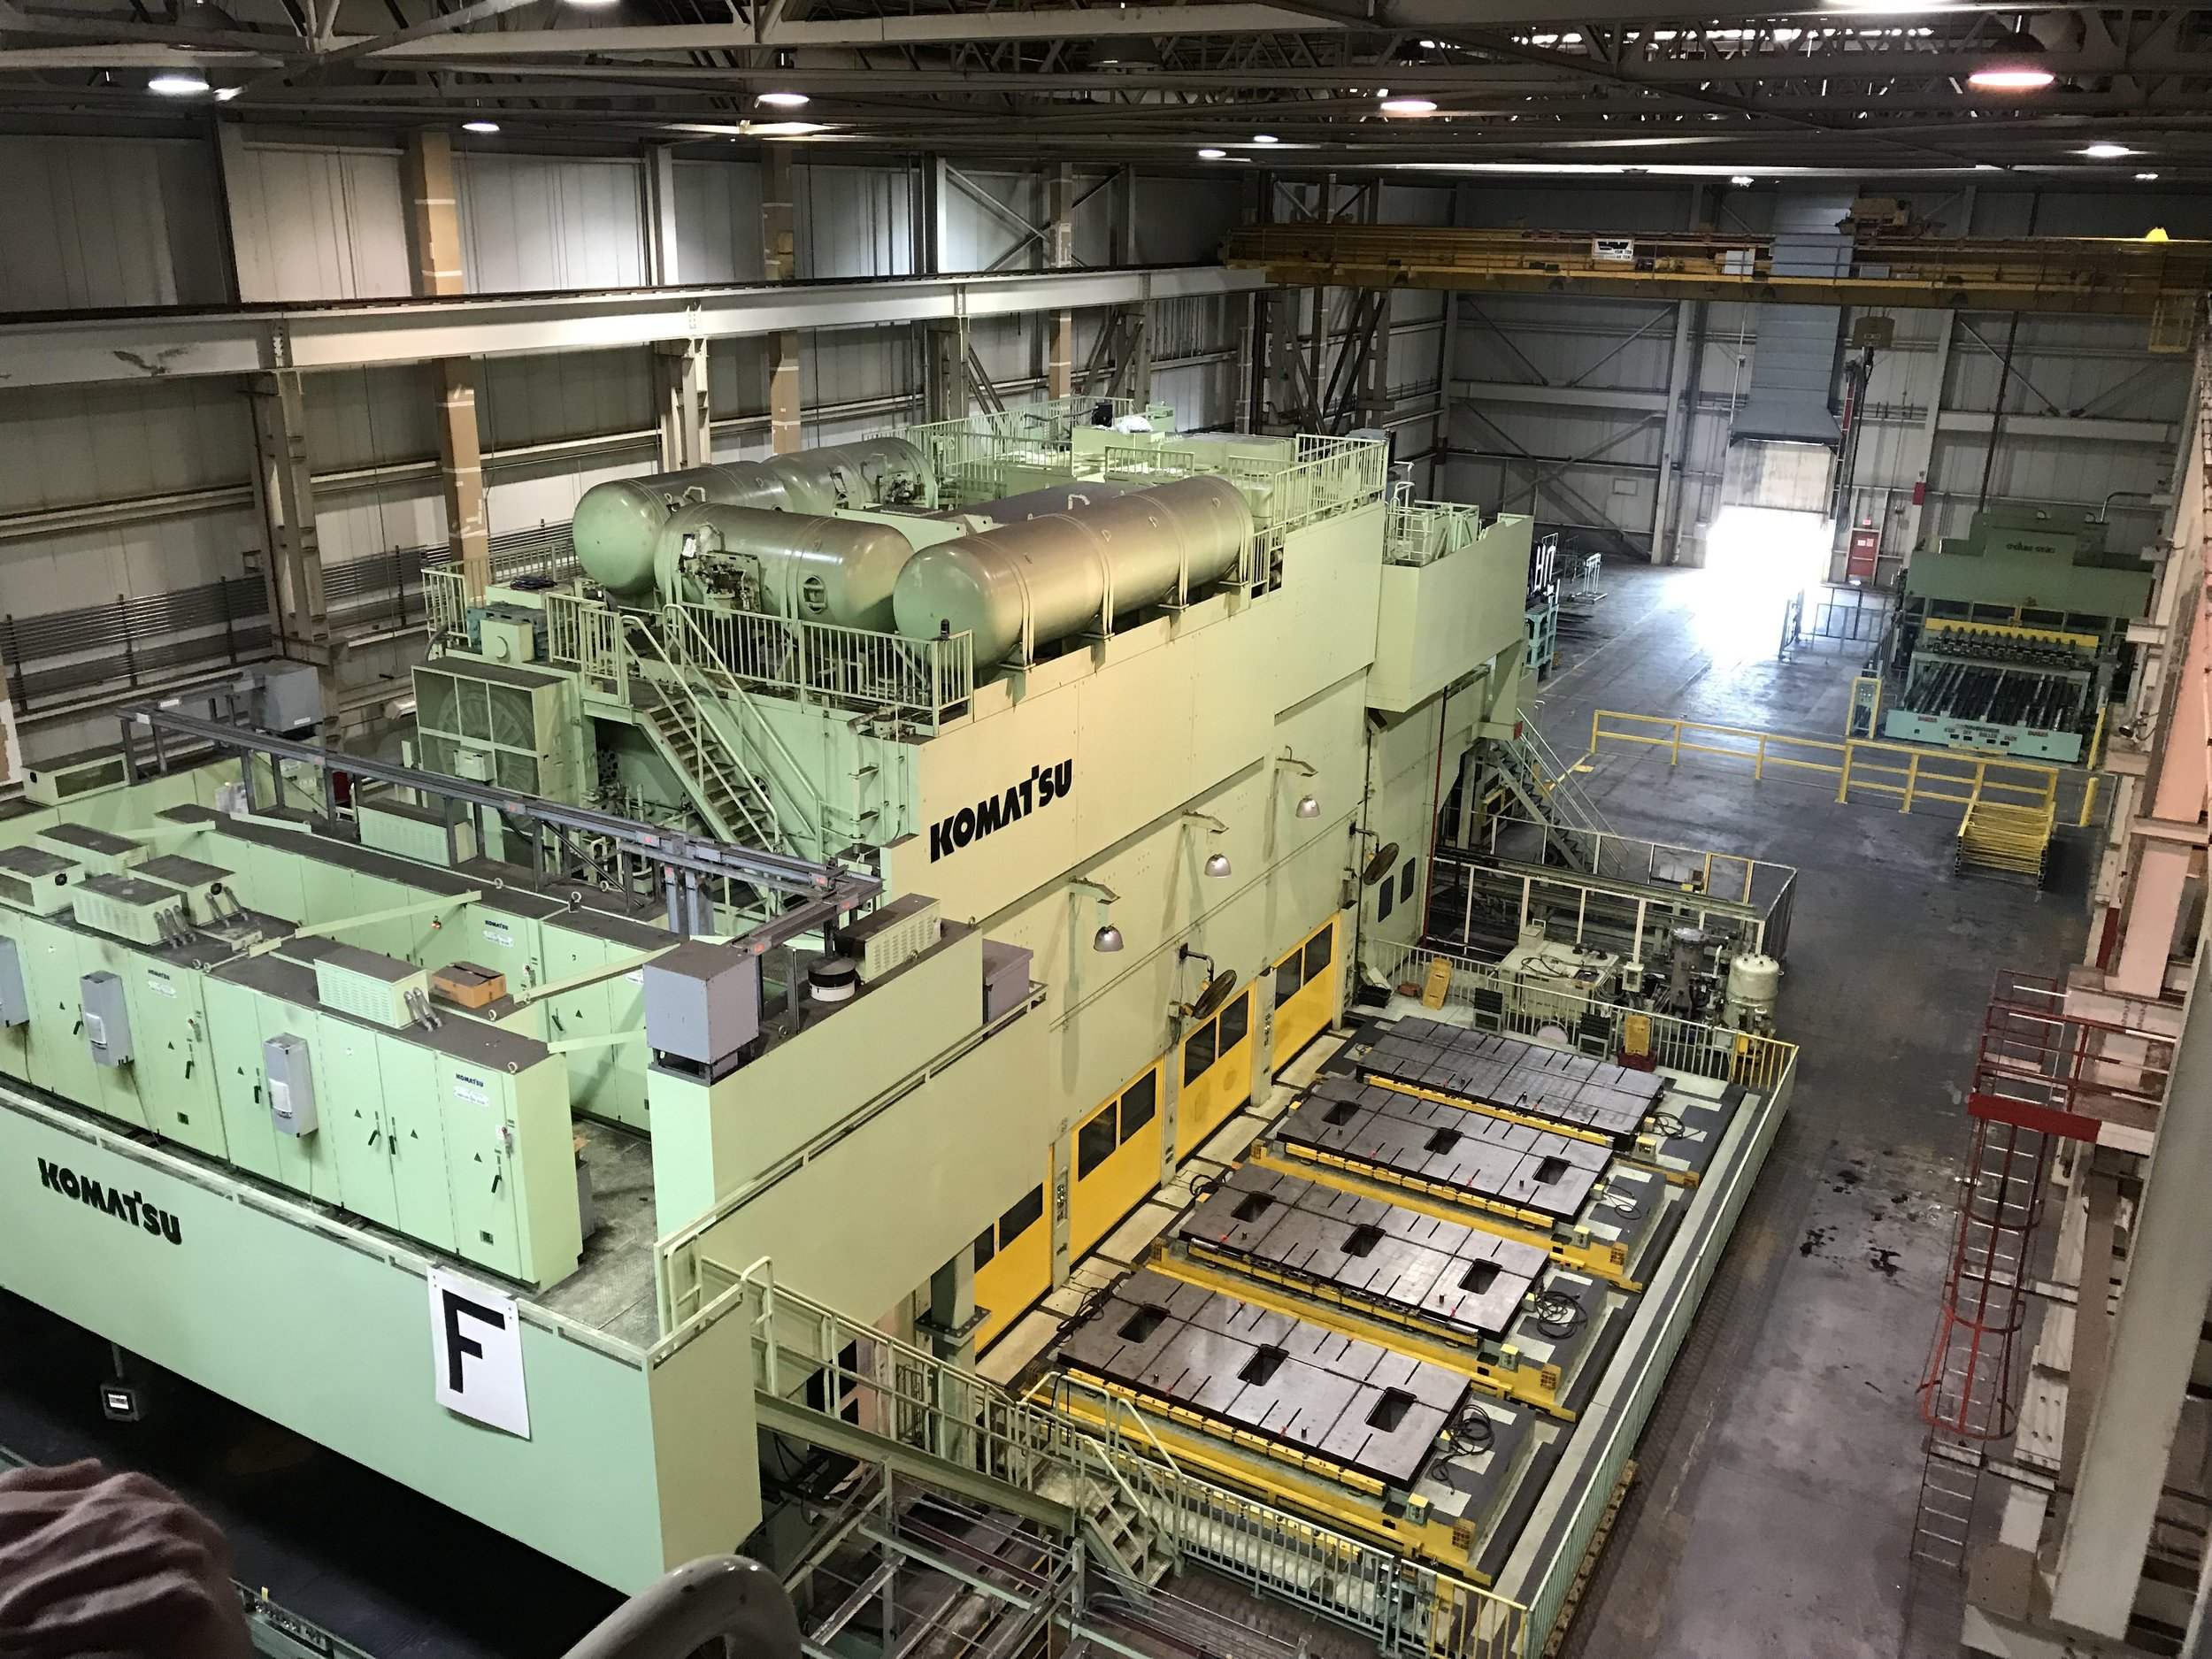 The largest stamping machine at the Rivian Factory, photo taken from 4 stories above. (Photo: Christian Prenzler)